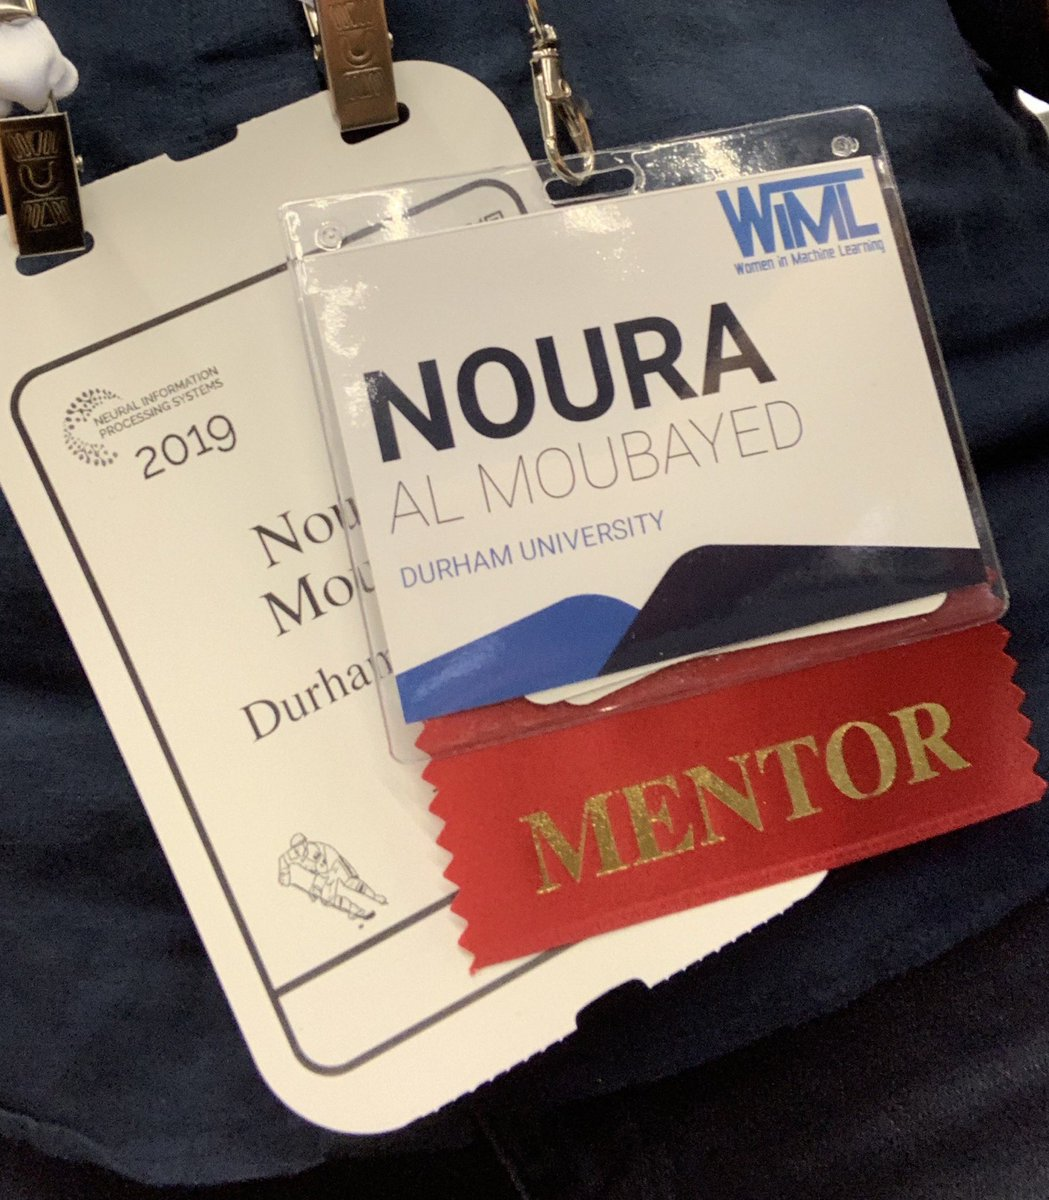 Had a brilliant time today mentoring and talking to many inspiring women @WiMLworkshop #NeurIPS2019 @comp_sci_durham